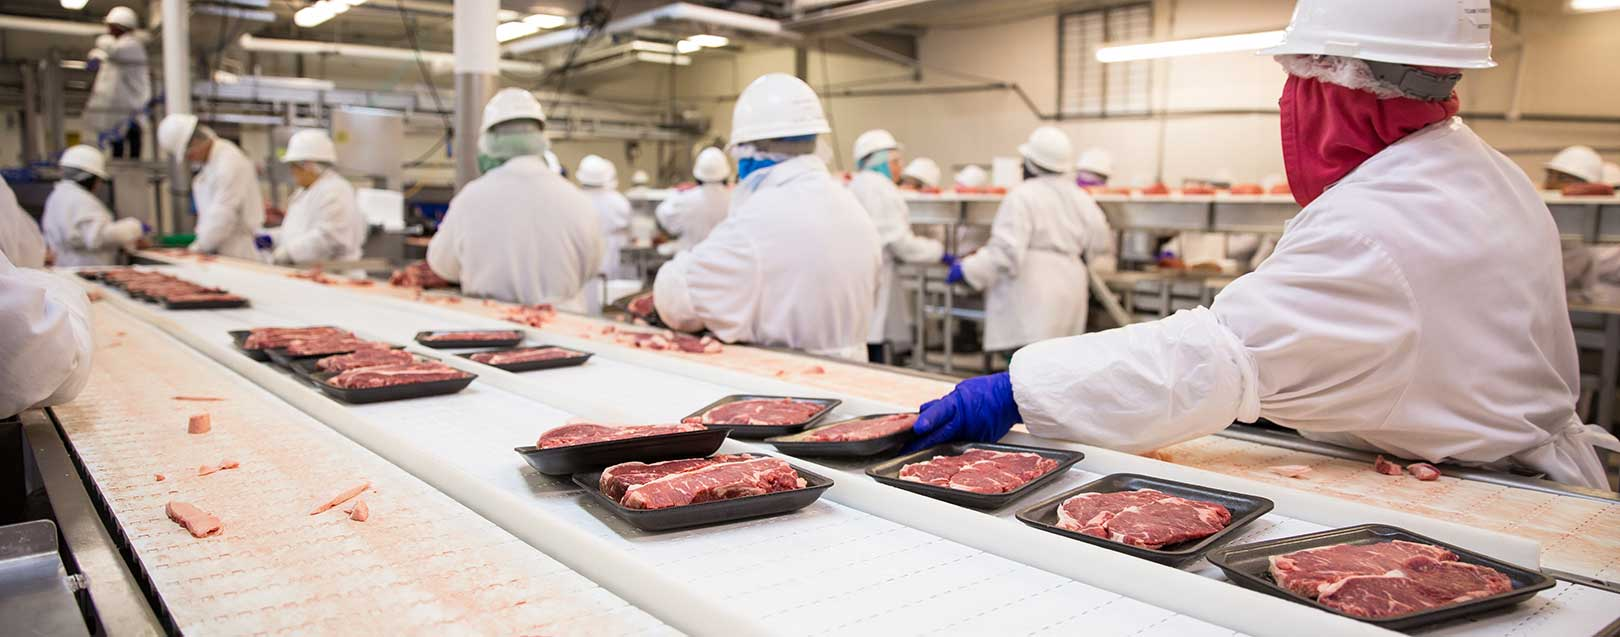 US announces immediate suspension of beef imports from Brazil